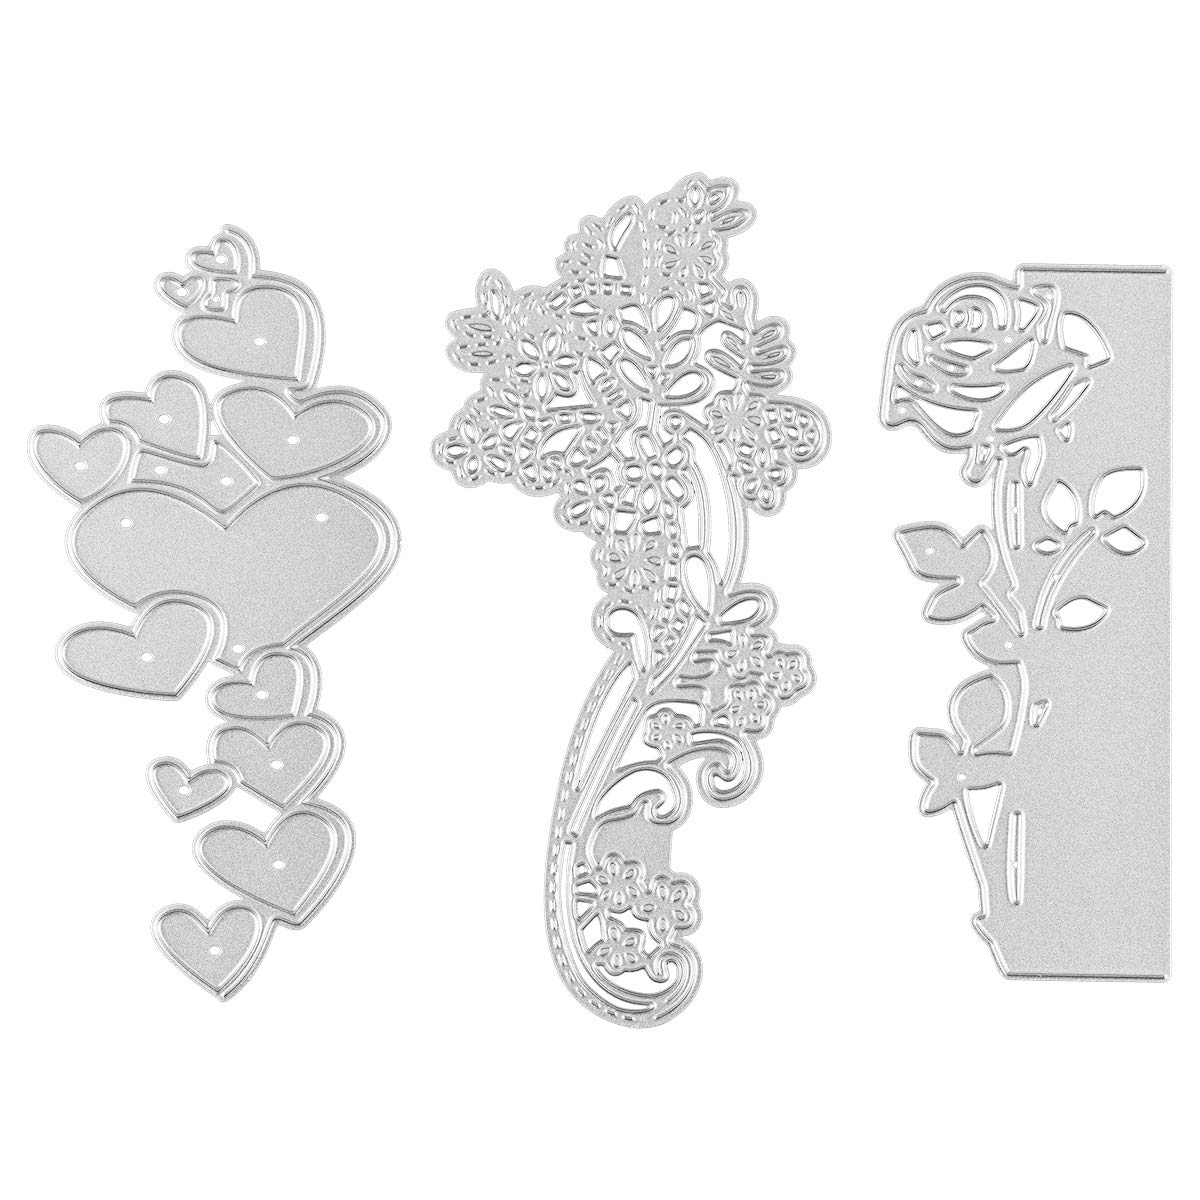 3 Pack Metallic Cutting Die Embossing Dies Stencil Include Love, Rose Flower, Lace Shape for Scrapbooking Card Making DIY Crafts